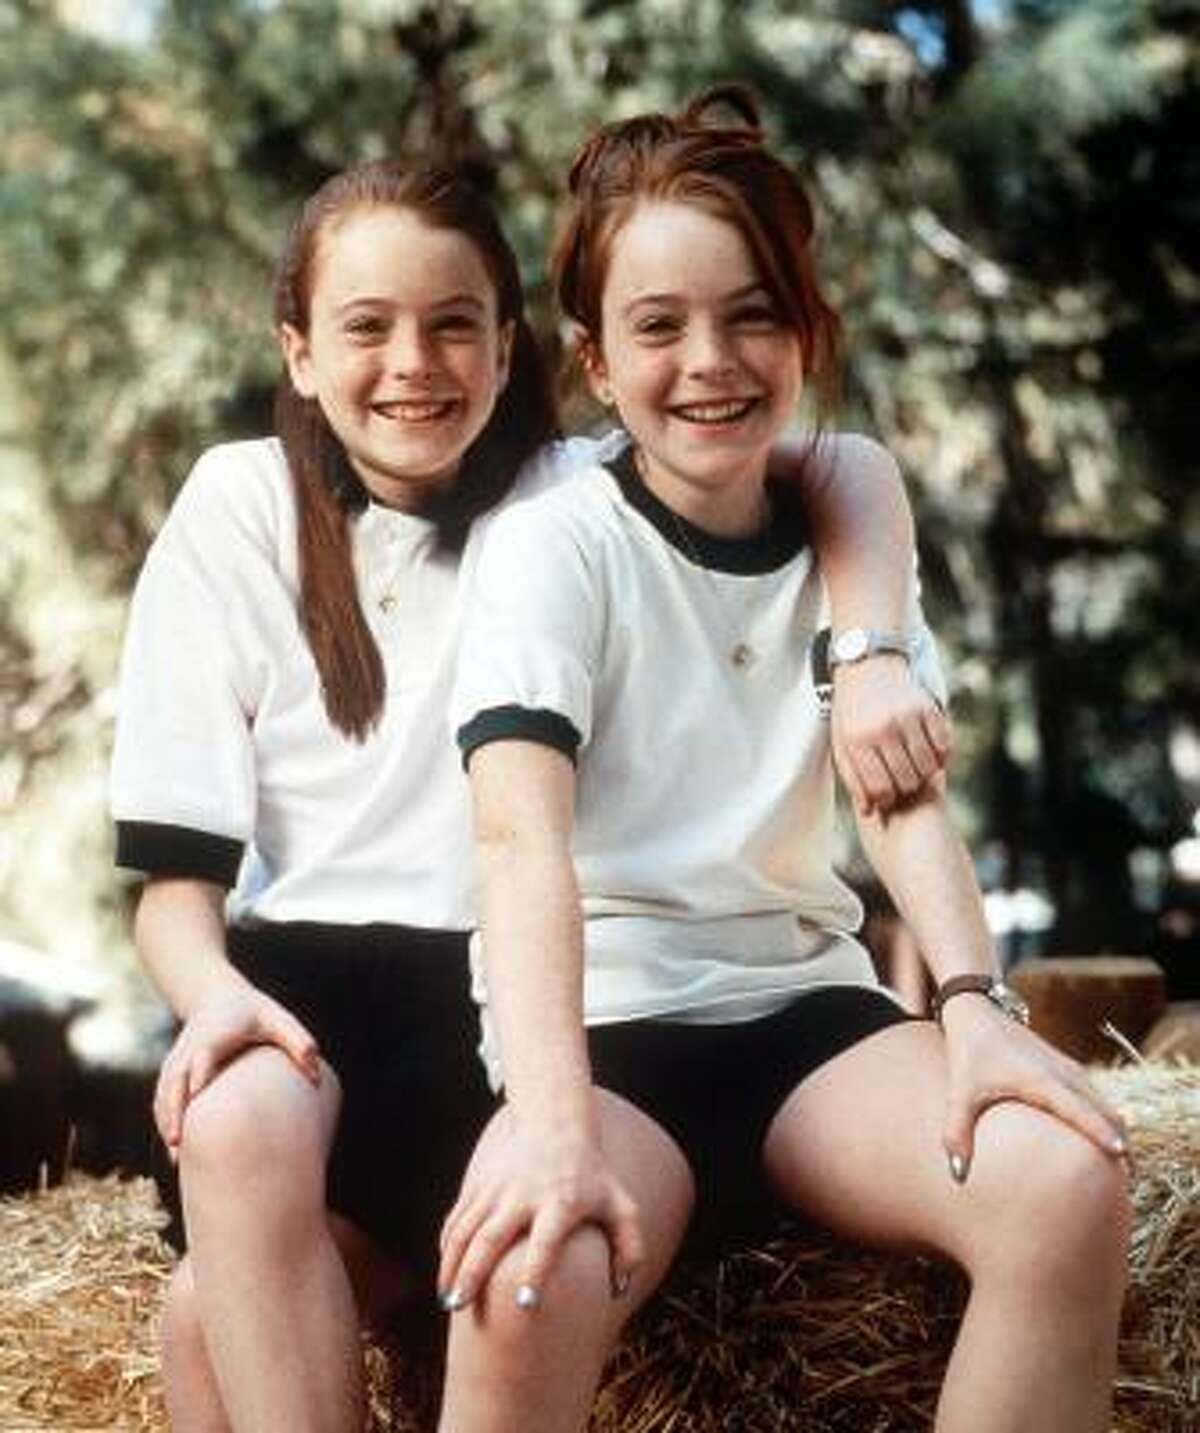 Lindsay began as a child model before starring in Disney's The Parent Trap in 1998 at 11.